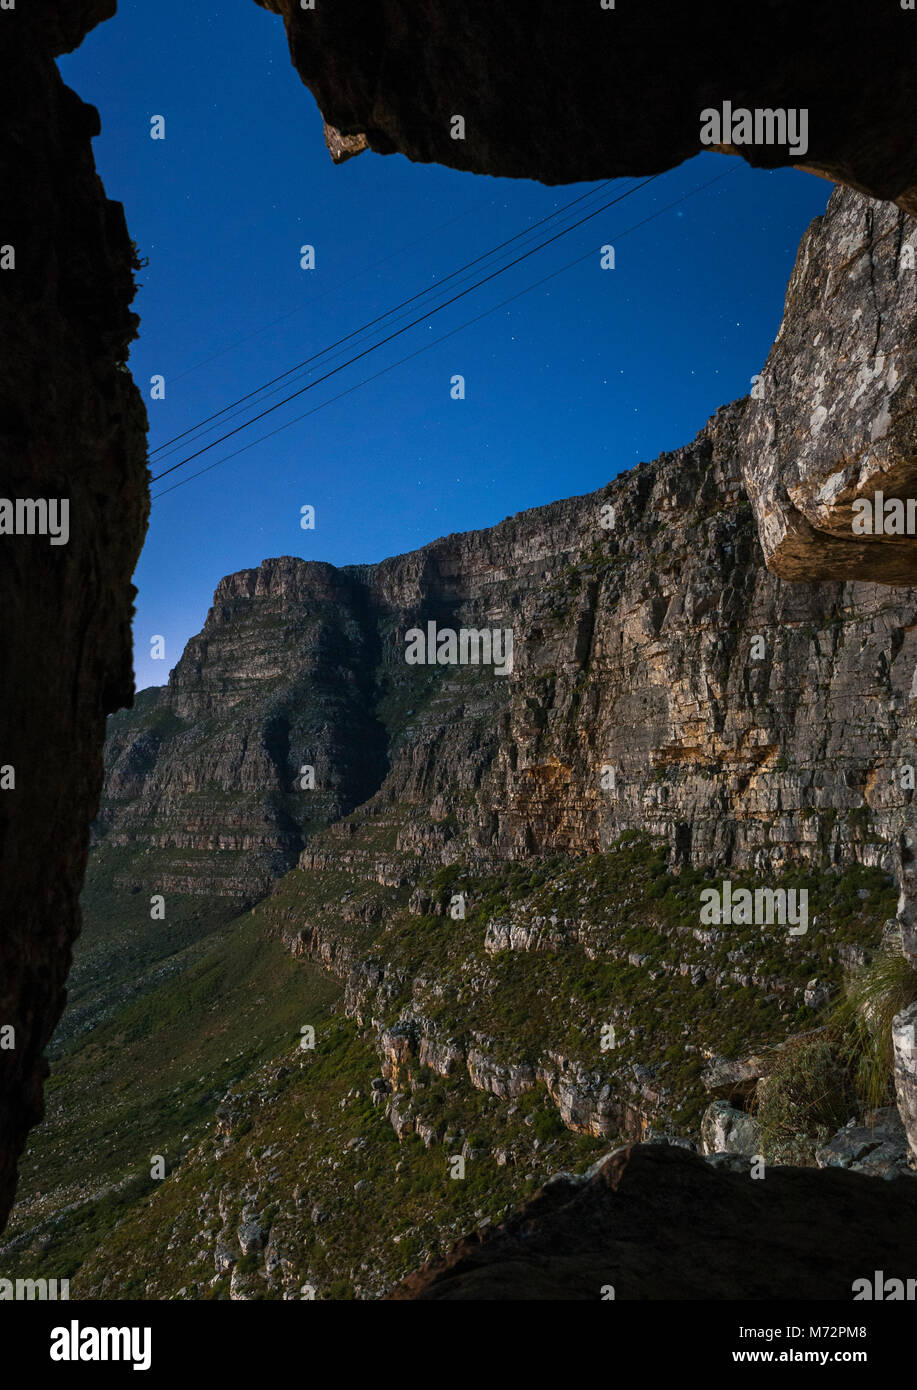 Table Mountain (in moonlight) seen through a natural rock formation called India Venster. - Stock Image